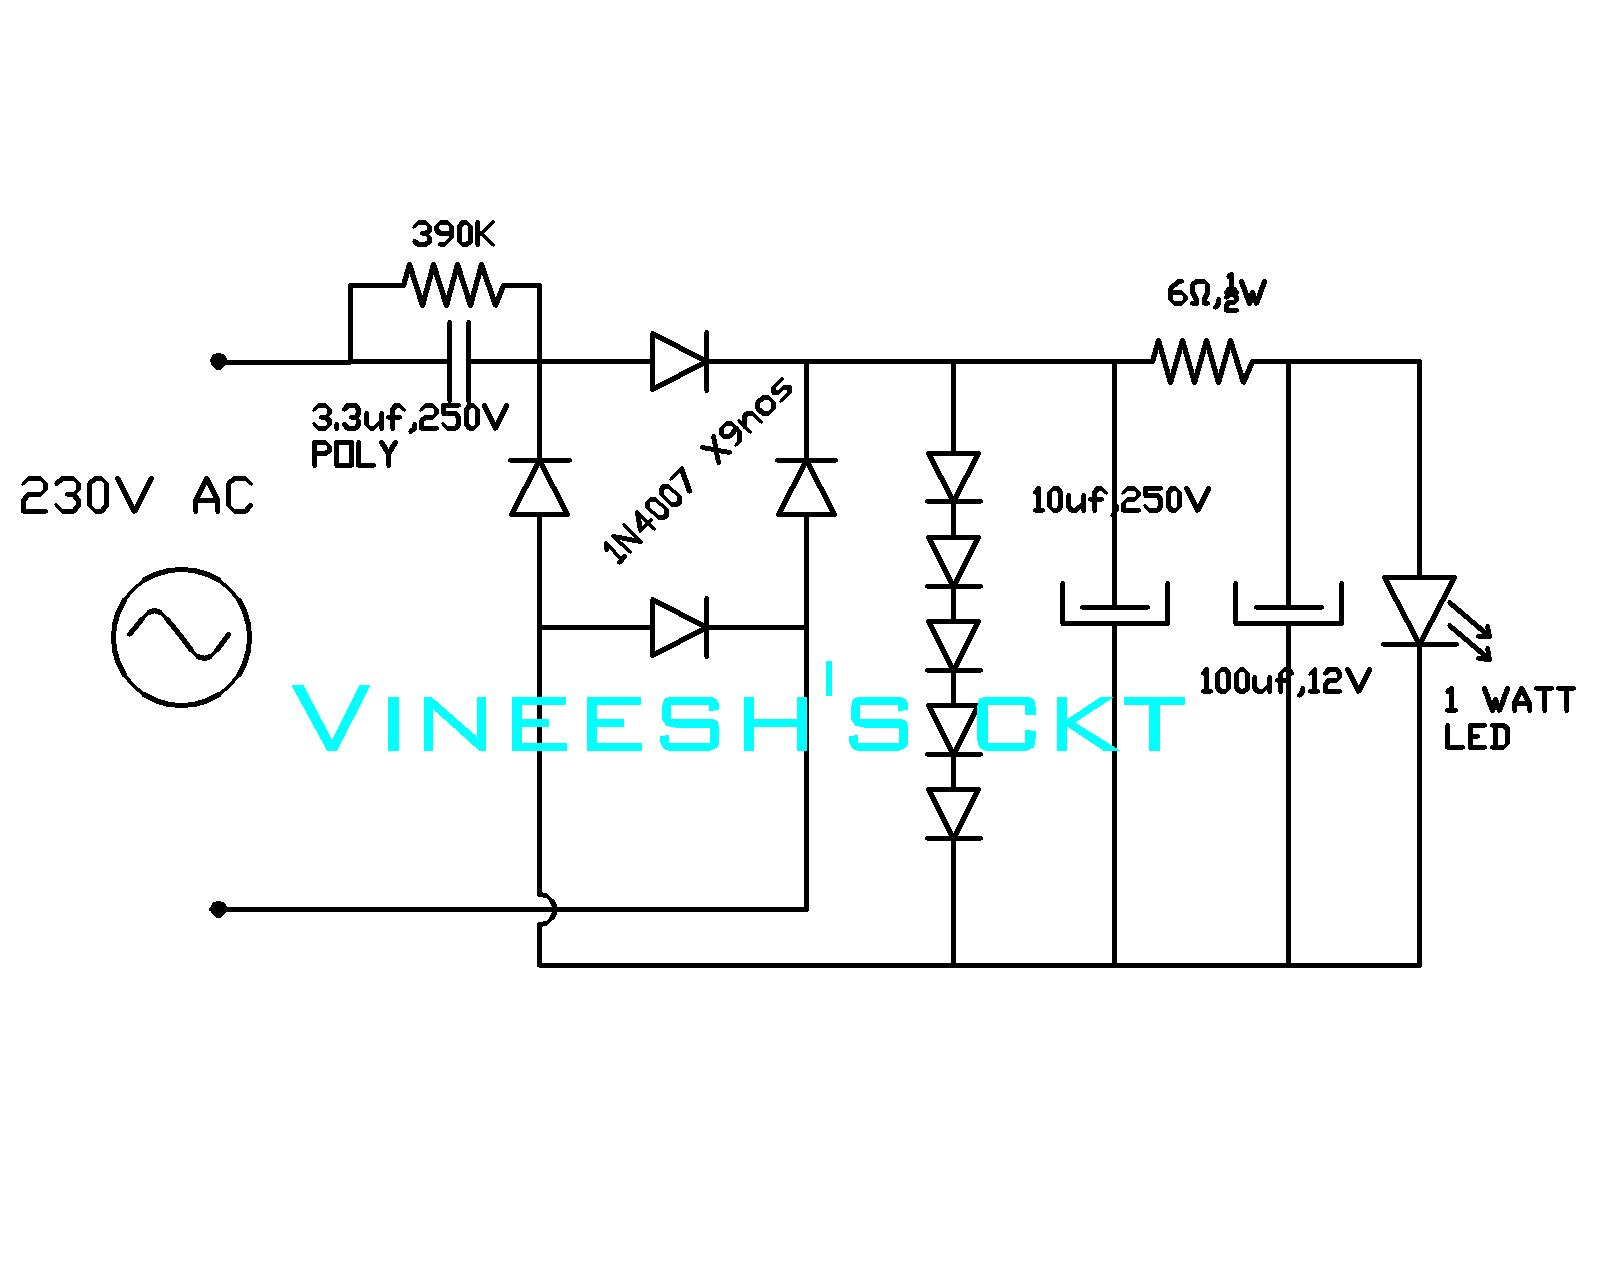 medium resolution of simple circuits vineetron 230v to 1 watt led driver simple led driver circuit diagram 1 watt led driver circuit